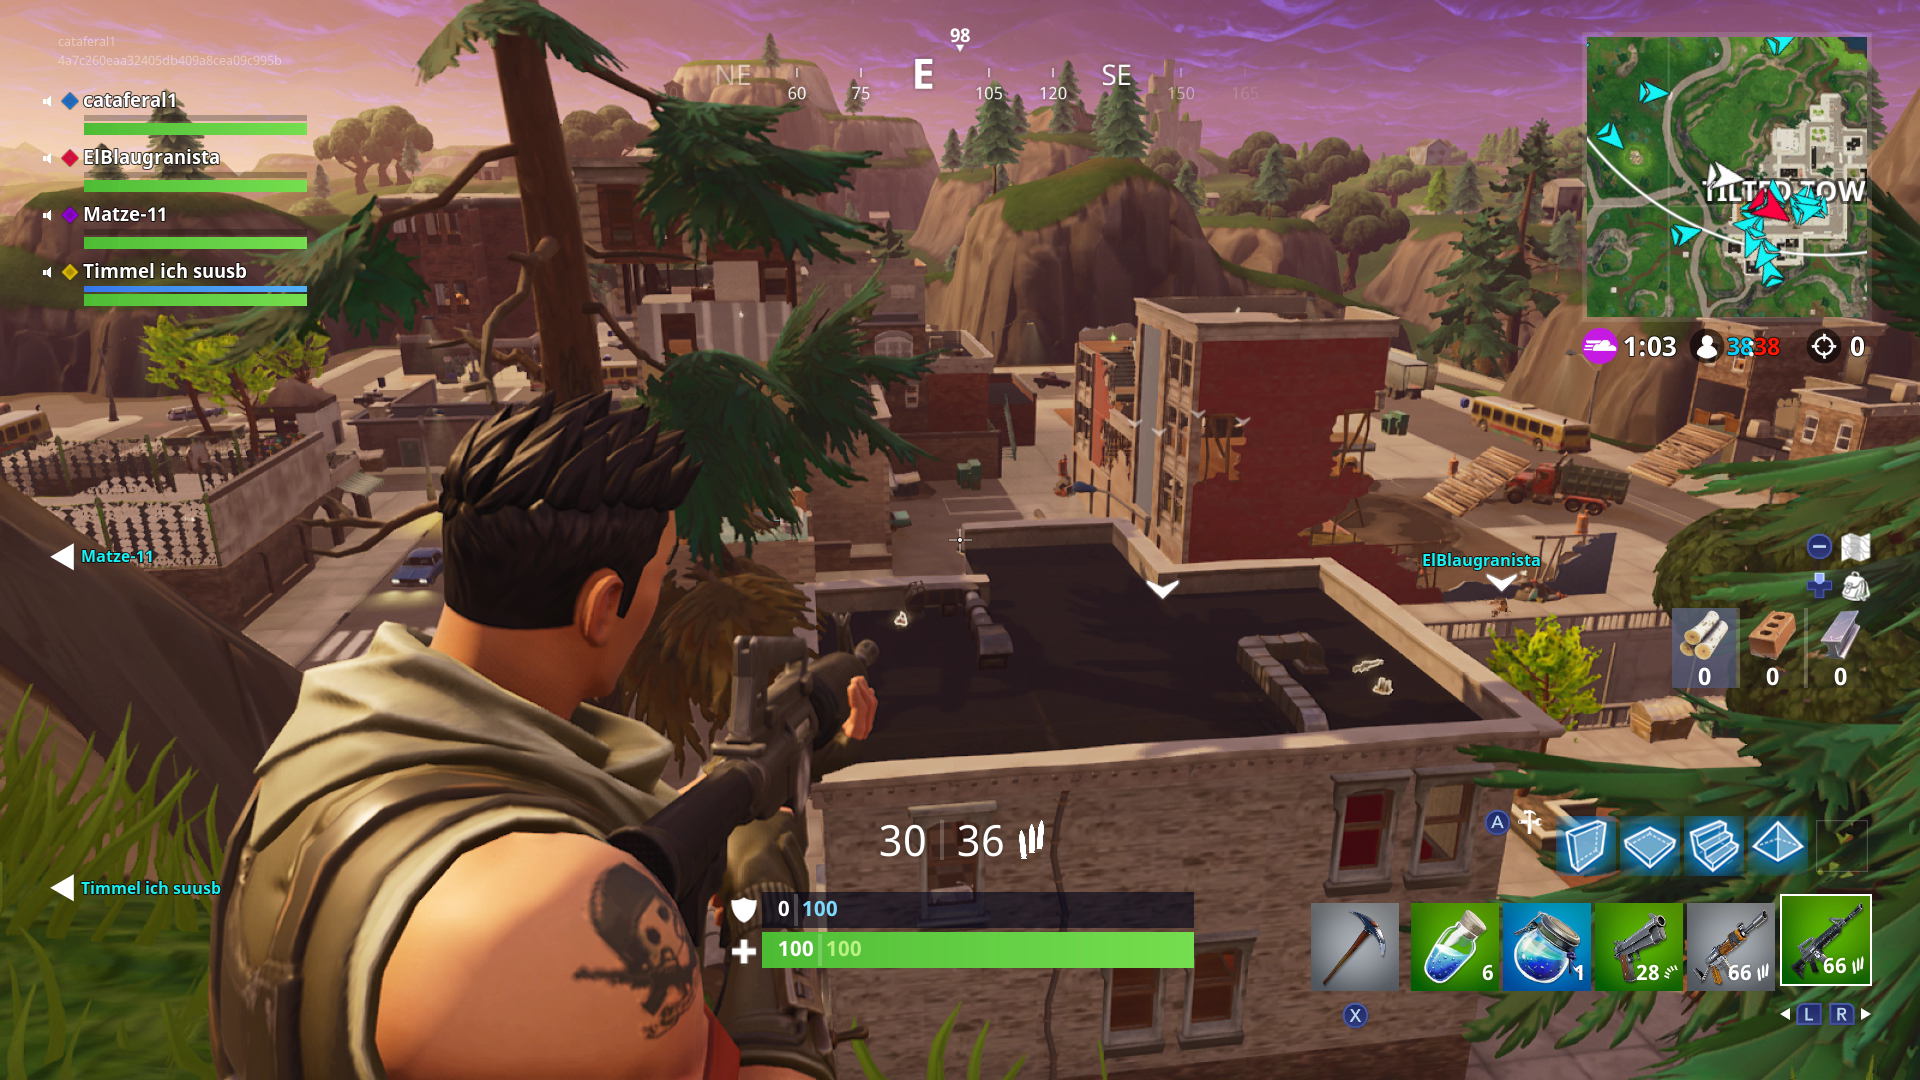 Fortnite\'s Switch port is impressive - but frame-rate could be ...